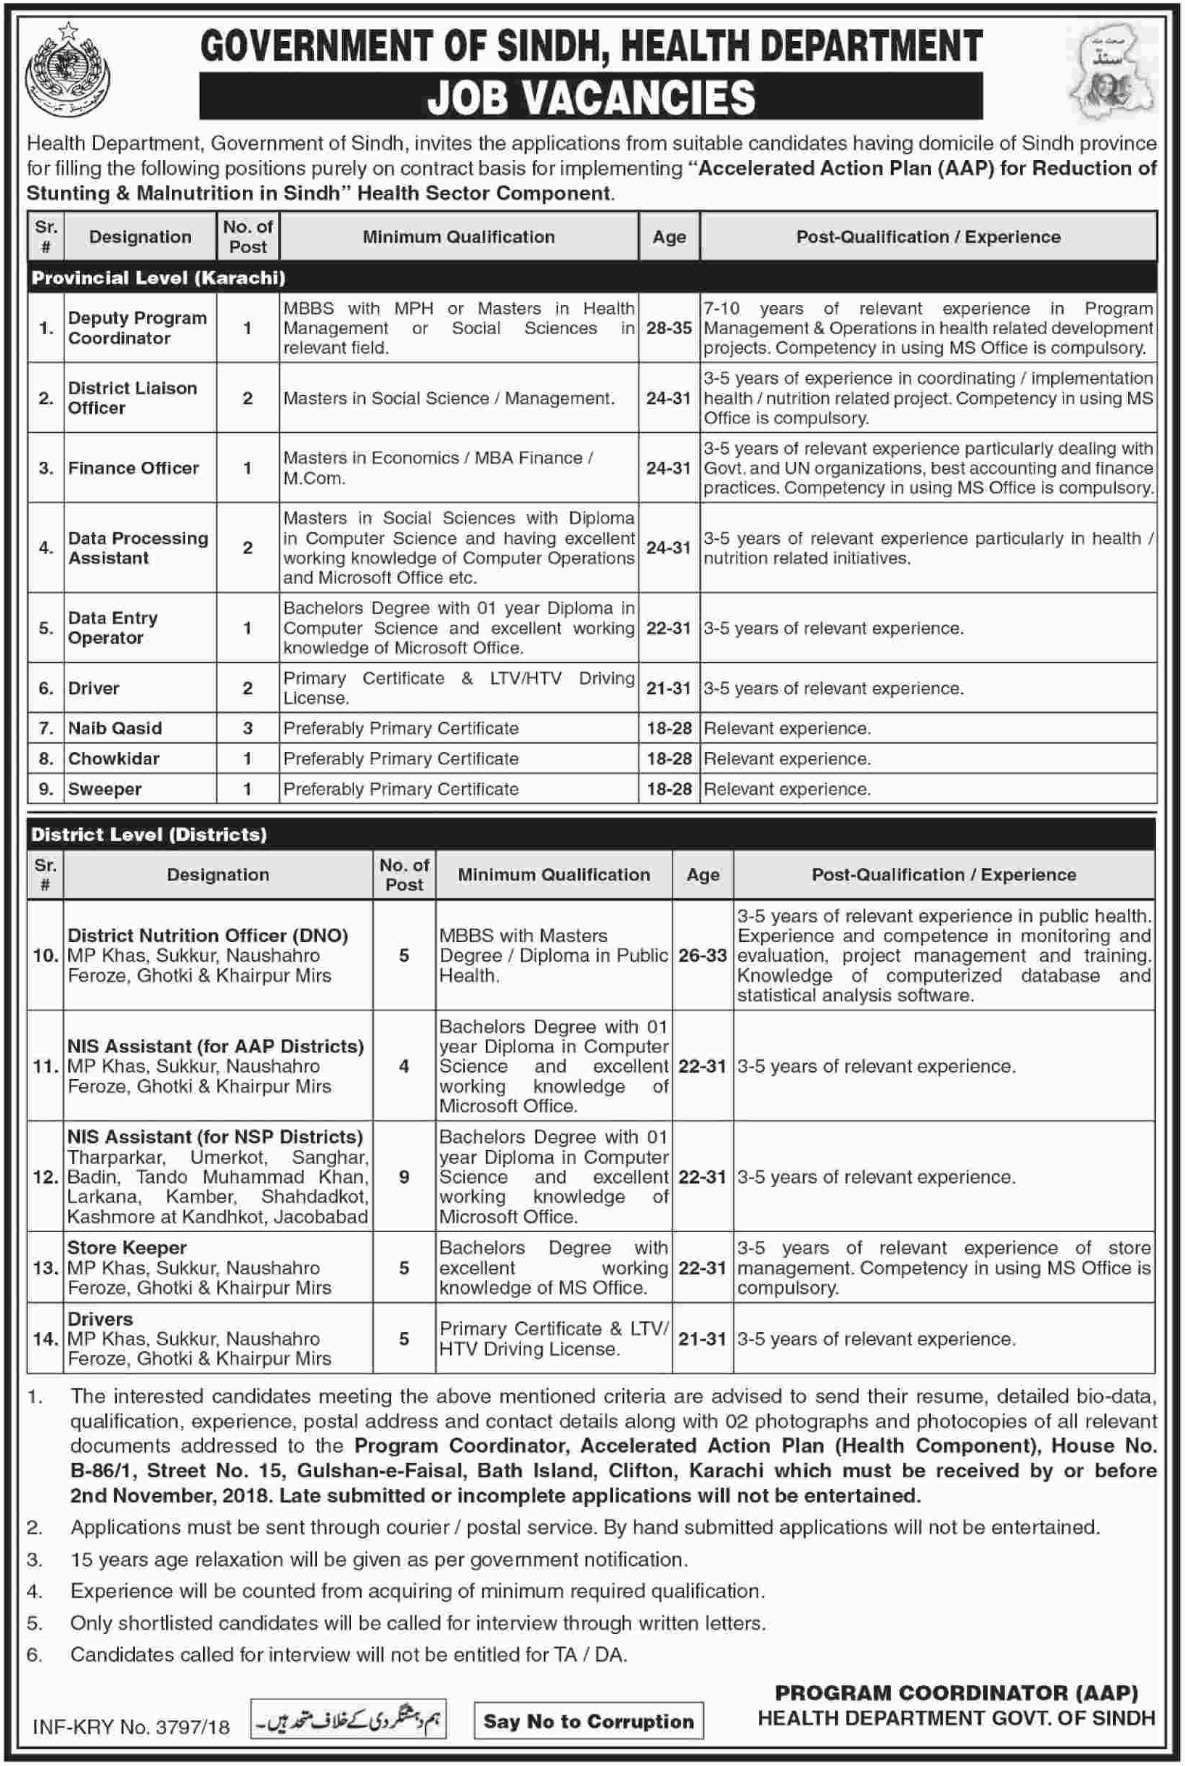 Health Department Govt of Sindh Jobs Latest 2018